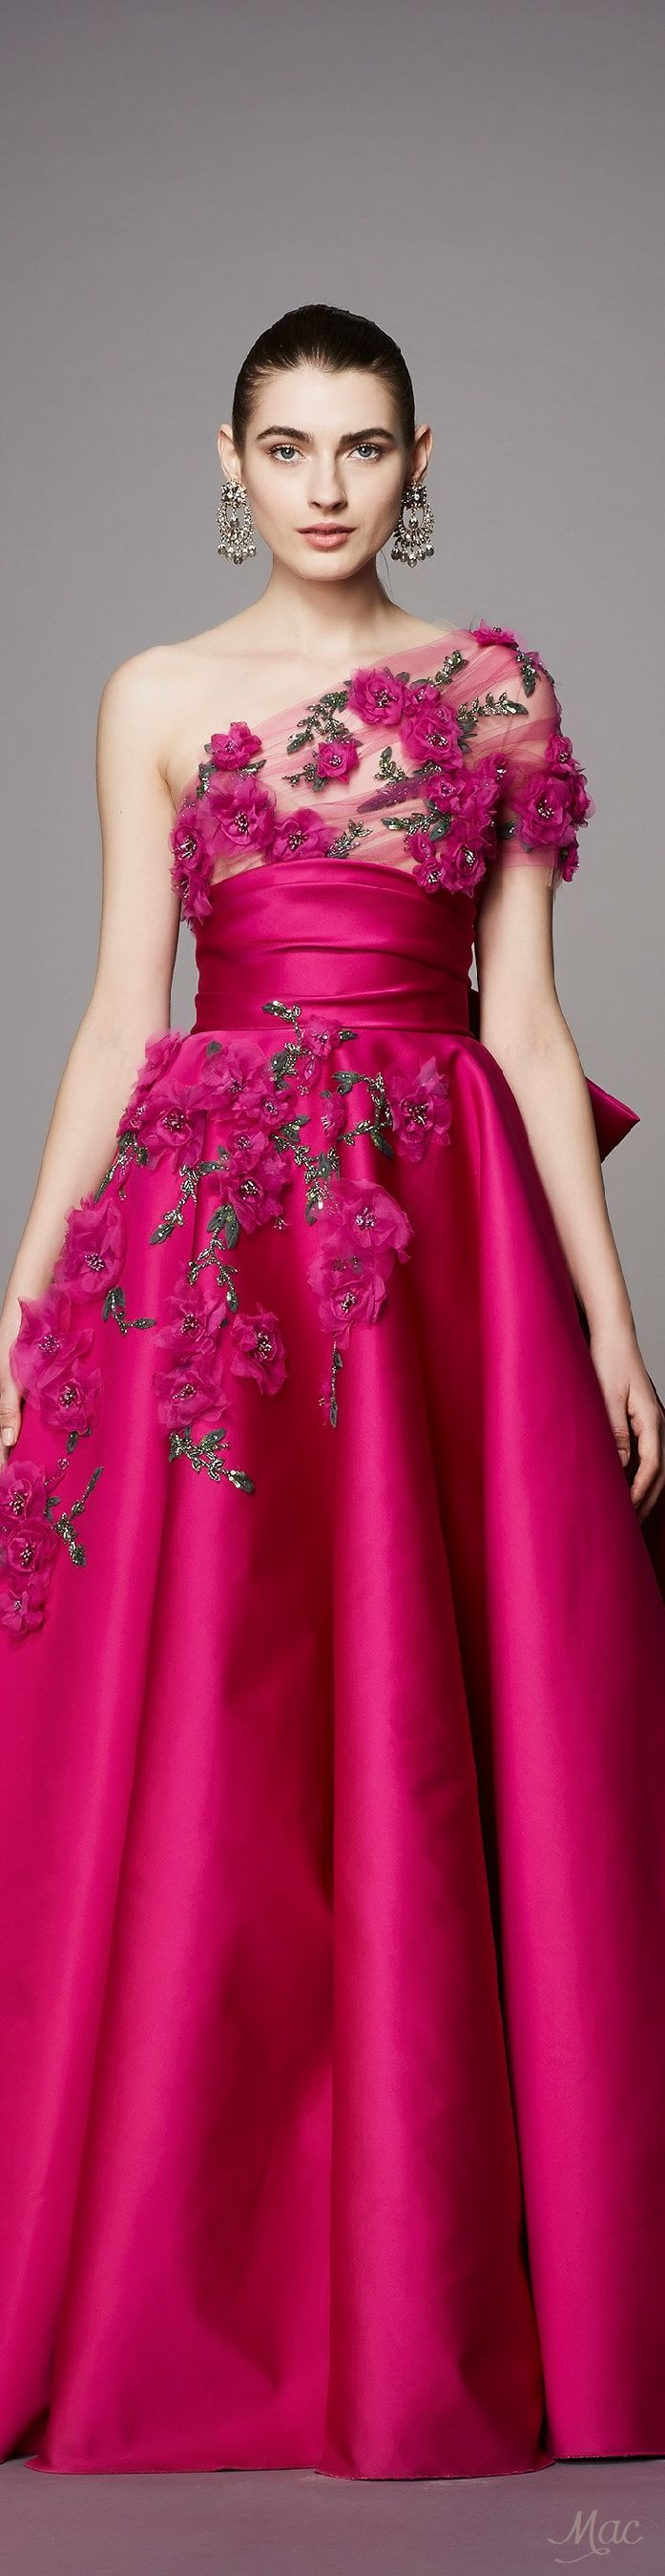 Pre-Fall 2017 Marchesa.  THIS GOWN IS BEAUTIFUL AND ELEGANT - LOVE IT -   CURLEYTOP1.